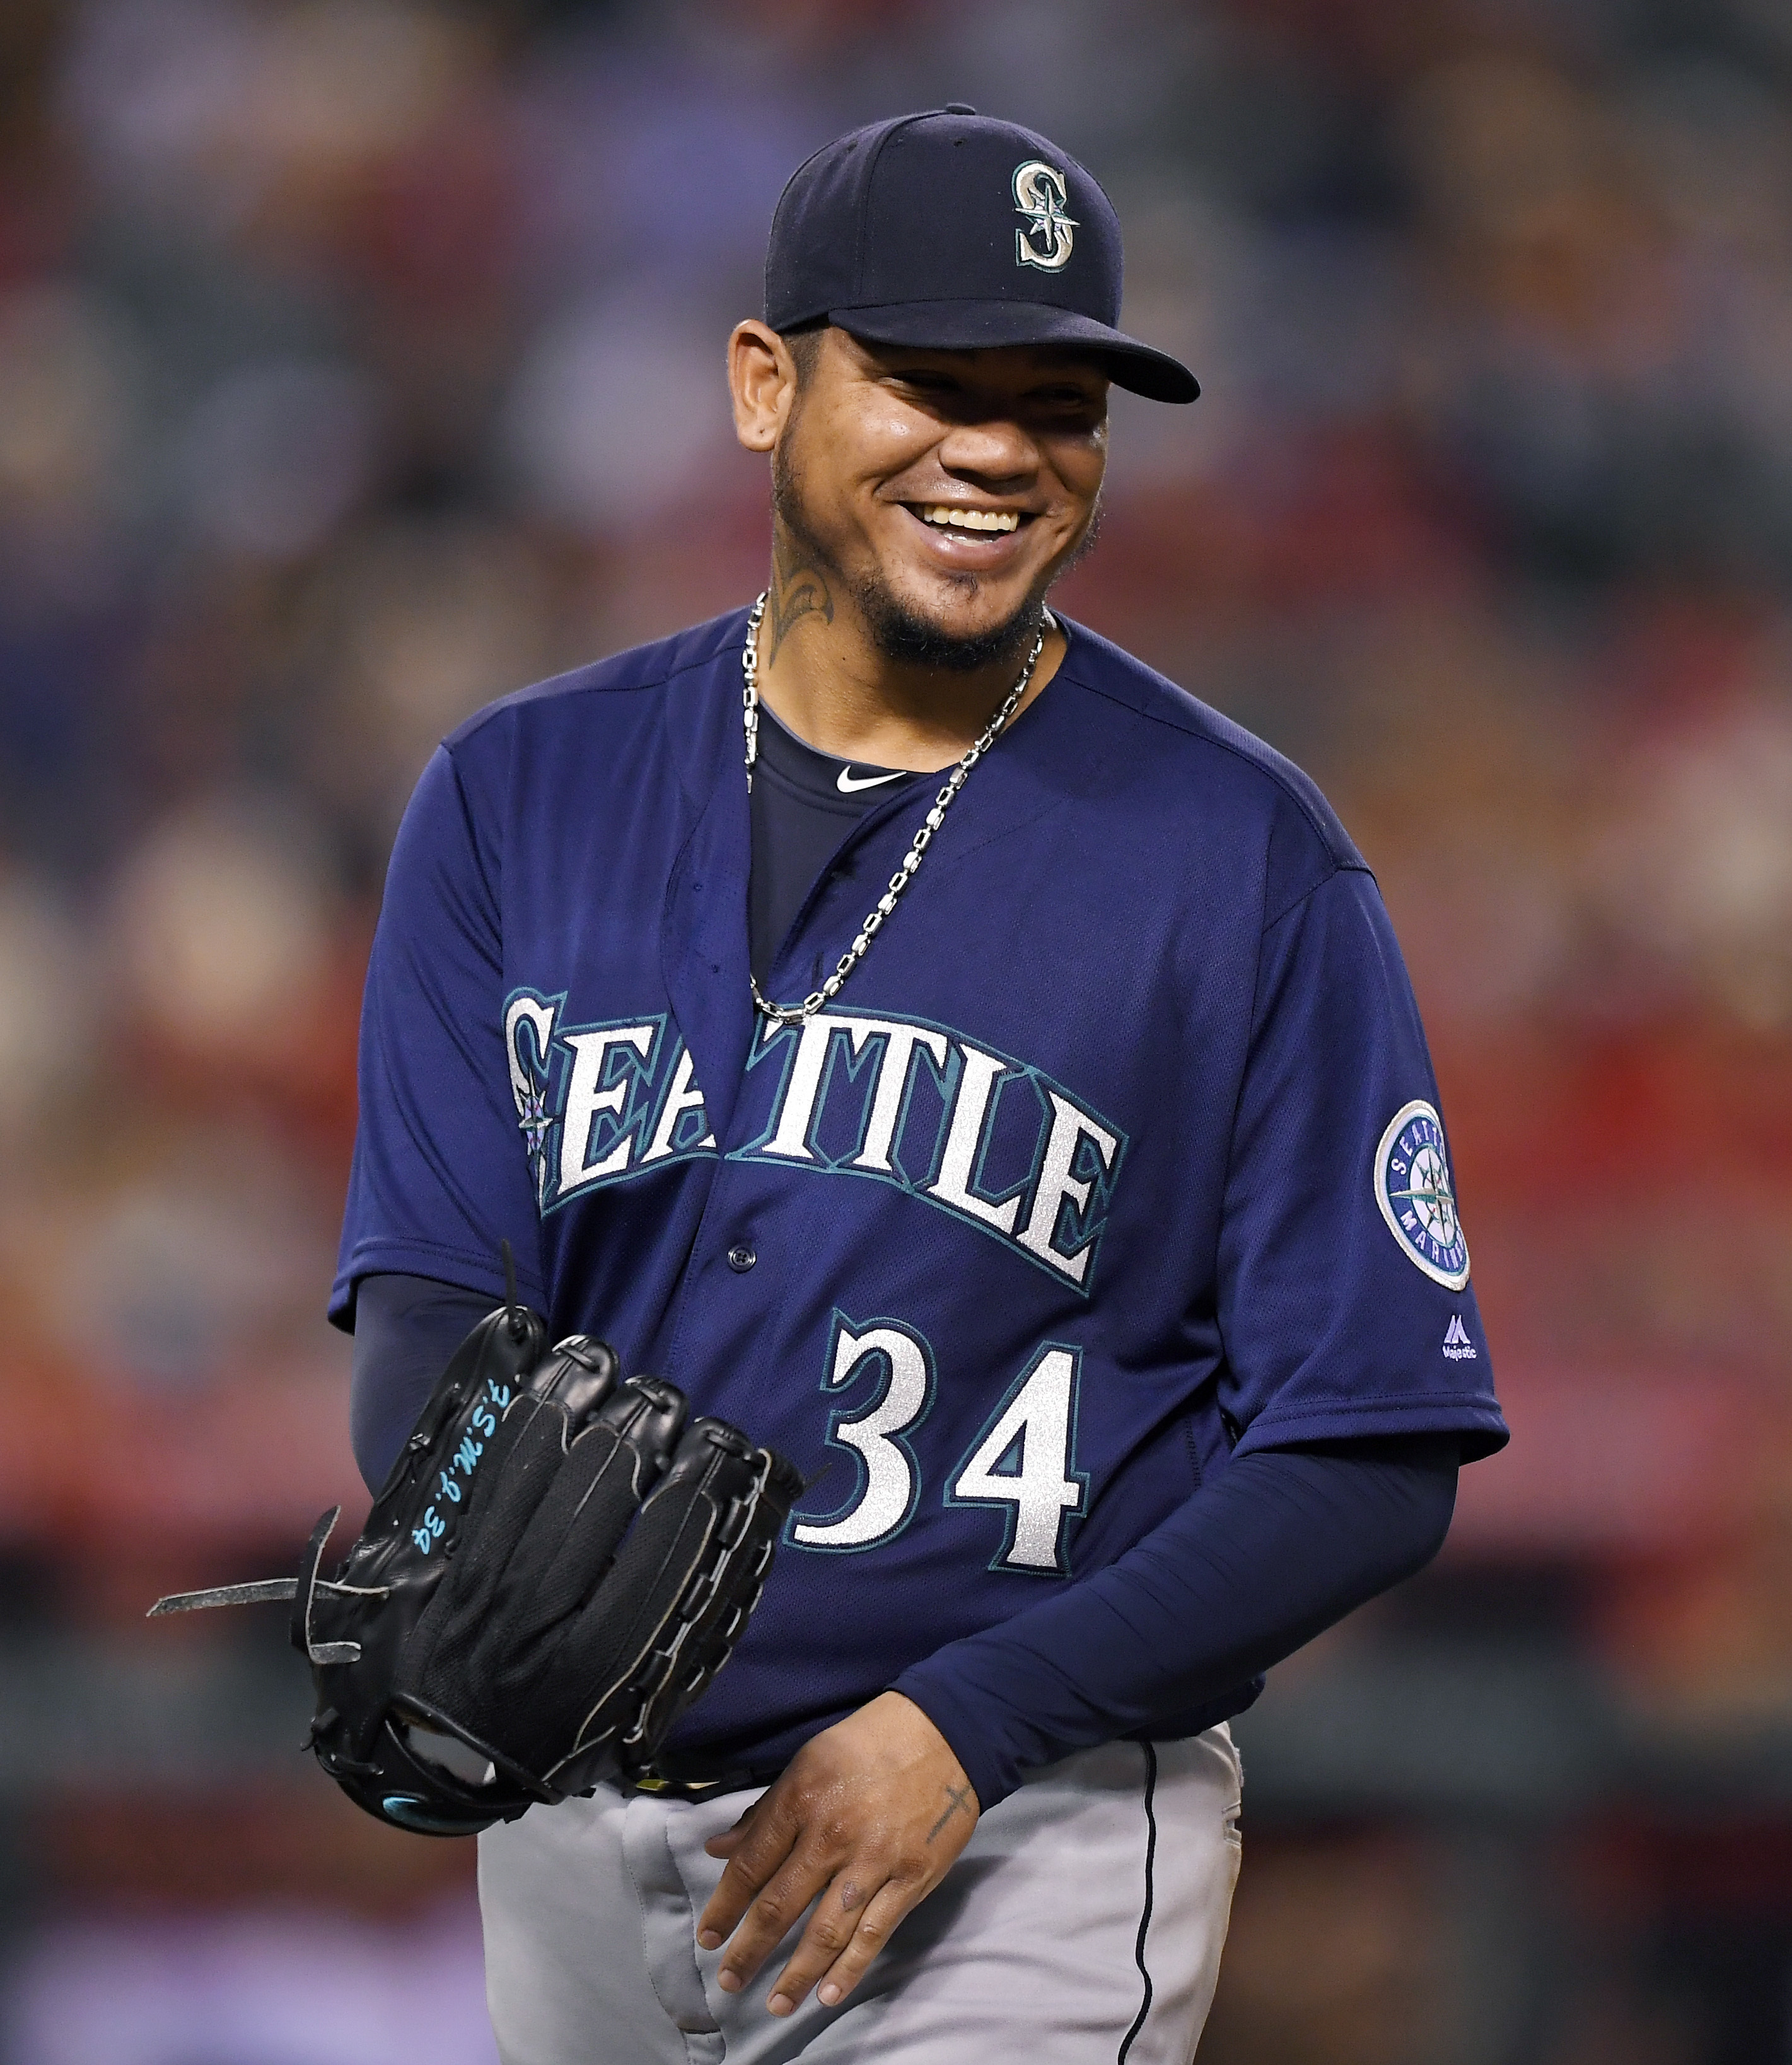 Seattle Mariners starting pitcher Felix Hernandez smiles after being taken out of the game in the seventh inning of a baseball game against the Los Angeles Angels, Monday, Aug. 15, 2016, in Anaheim, Calif. (AP Photo/Mark J. Terrill)